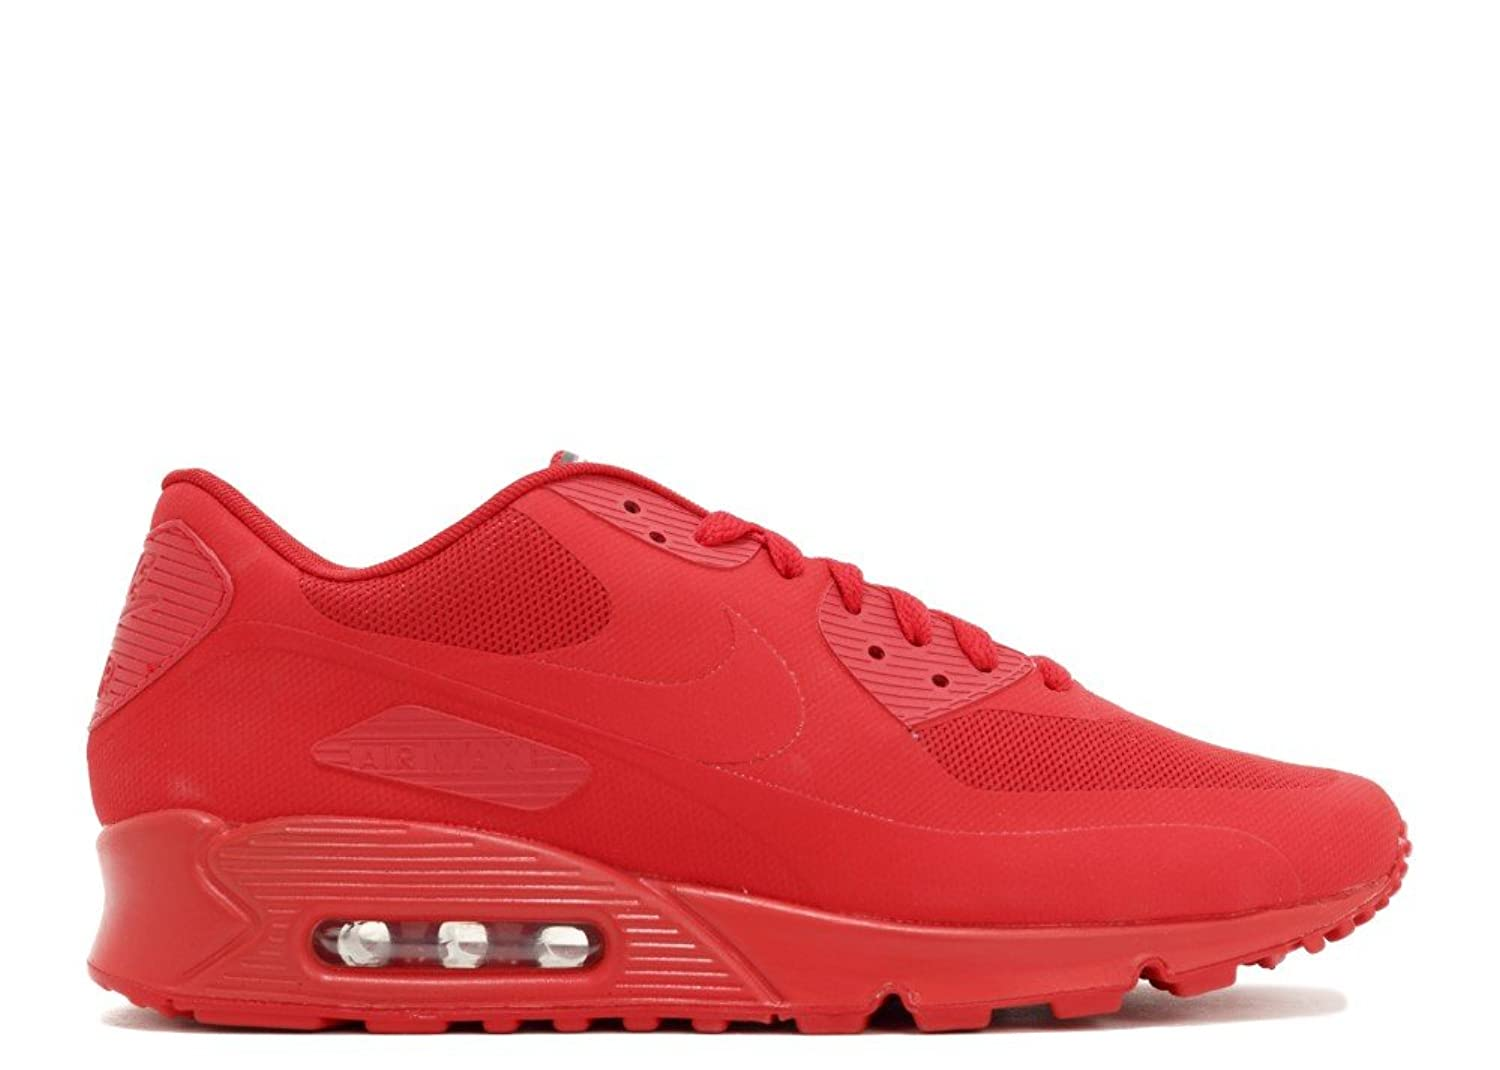 Nike Air Max 90 Hyperfuse Día Deporte Independencia Coche Rojo MRMgyKr